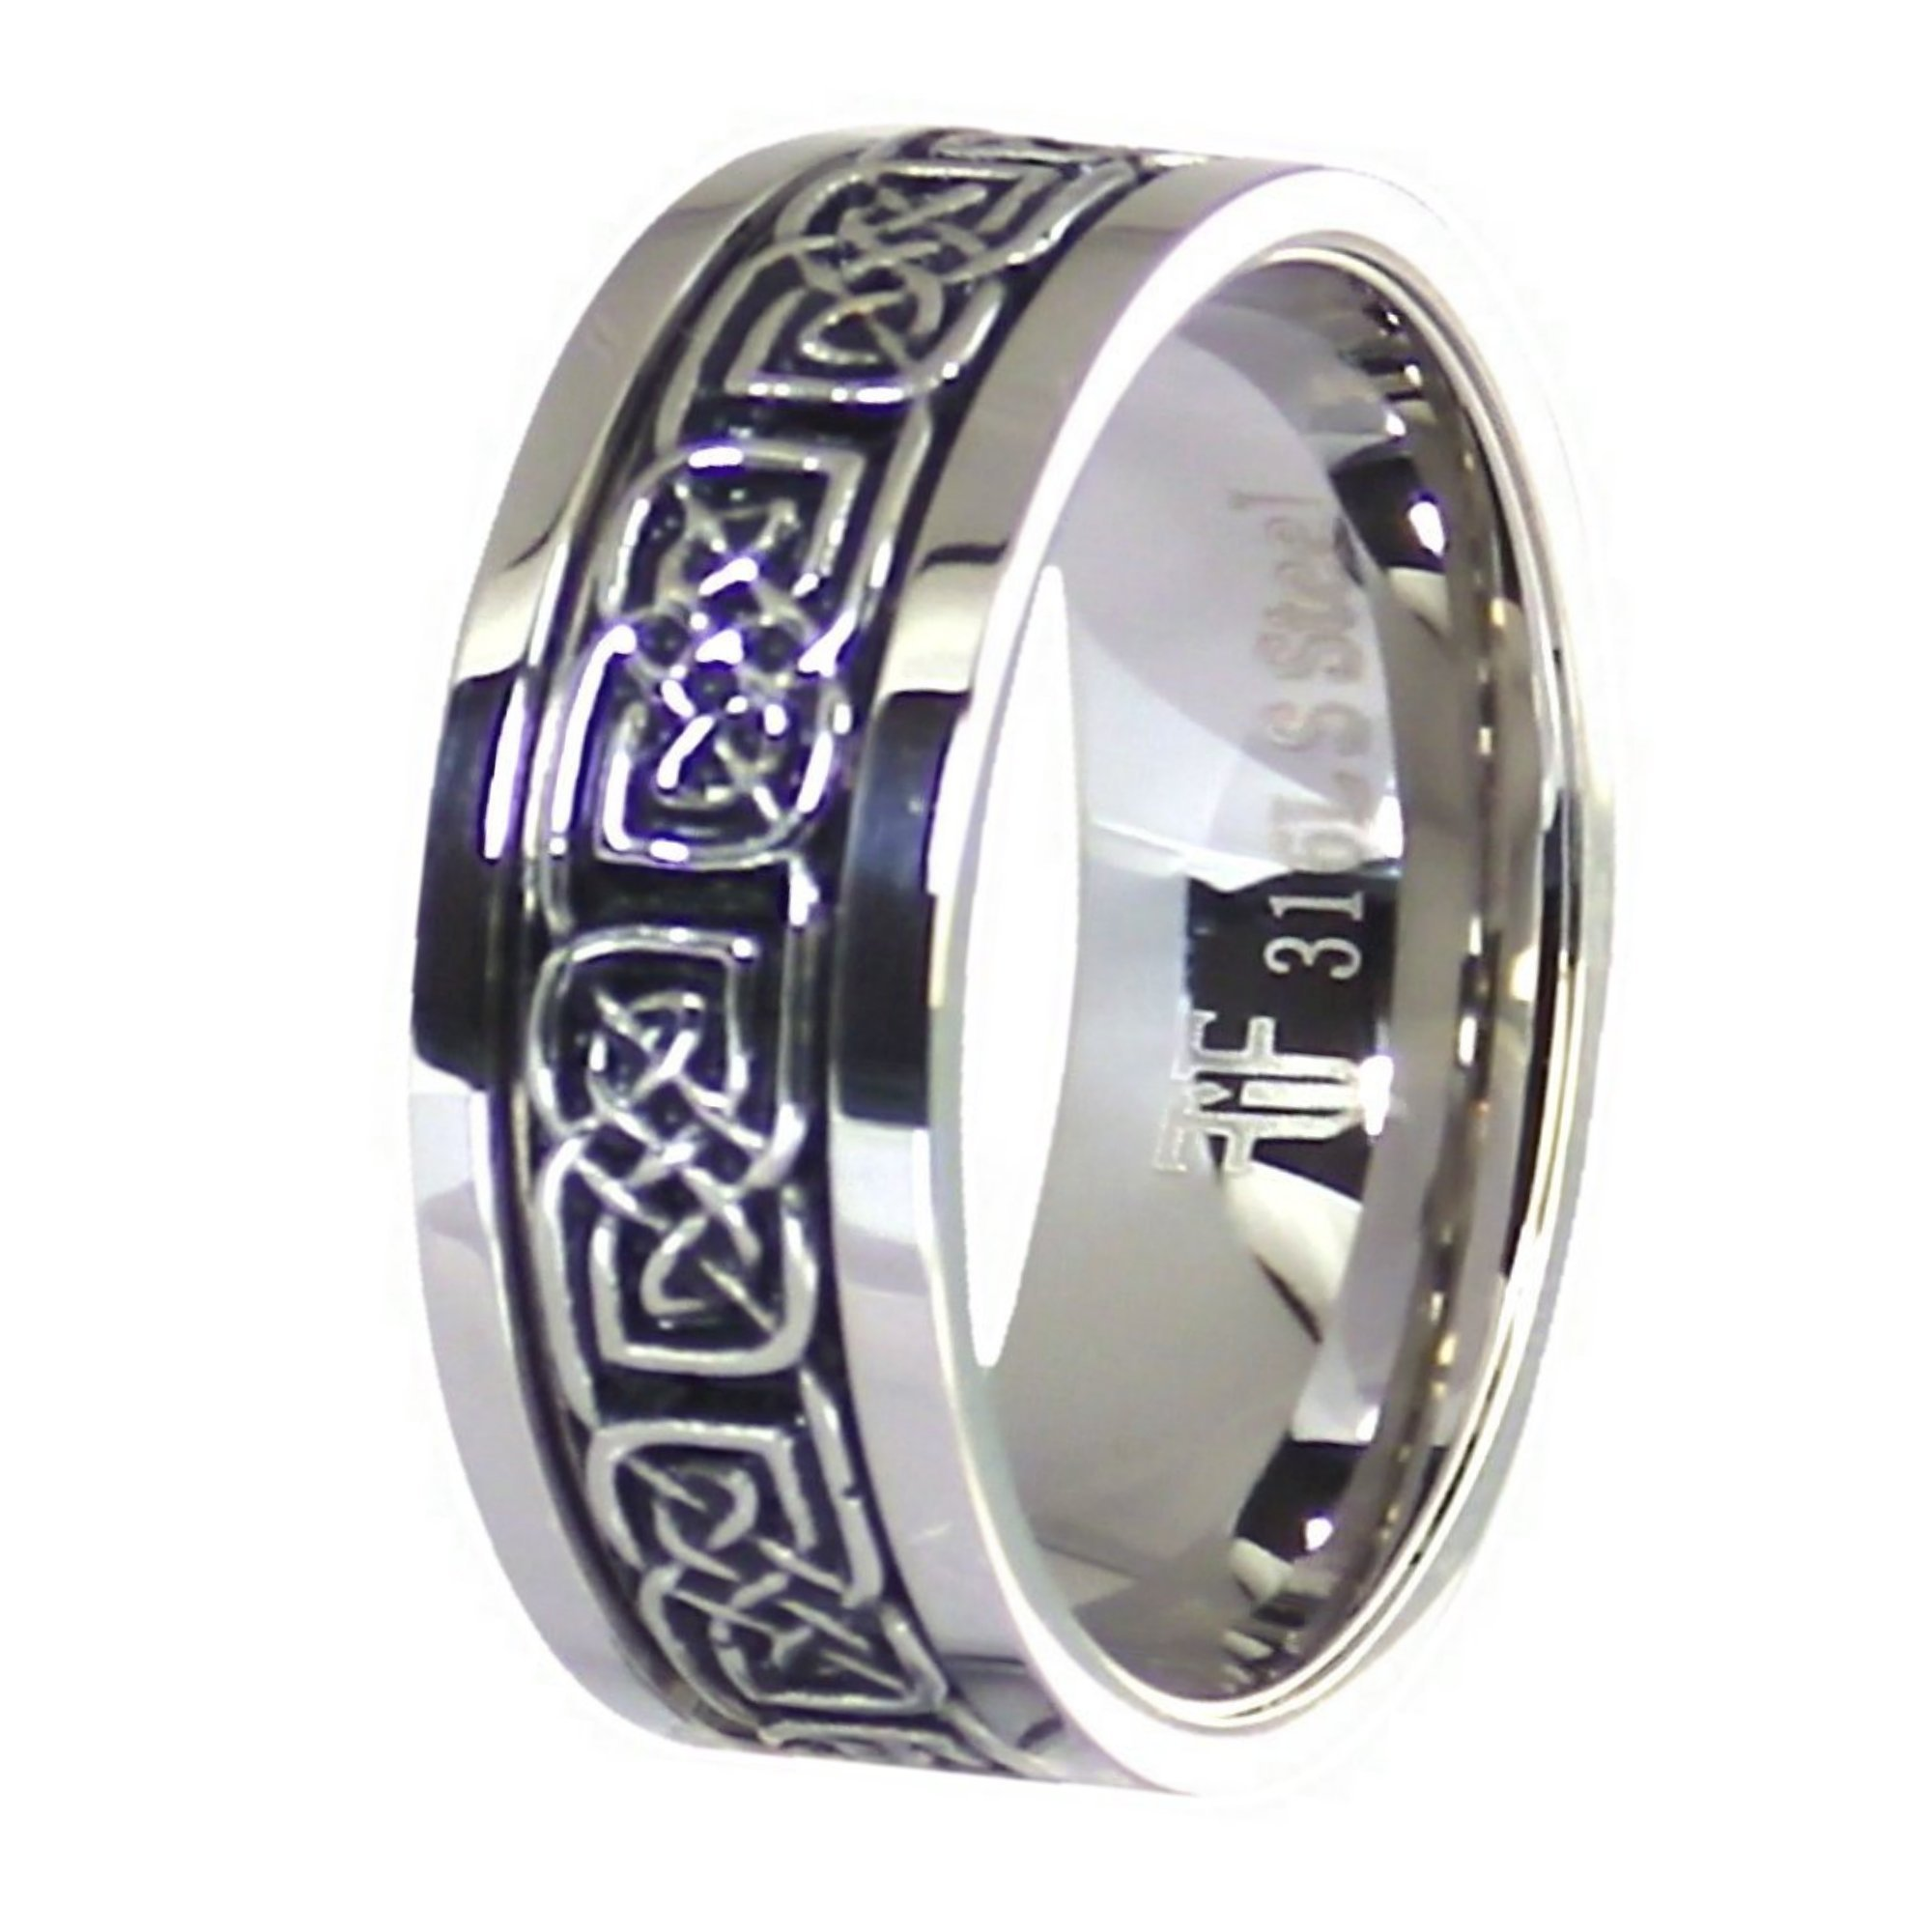 Fantasy Forge Jewelry Celtic Knot Stress Reliever Stainless Steel Spinner Ring Size 7